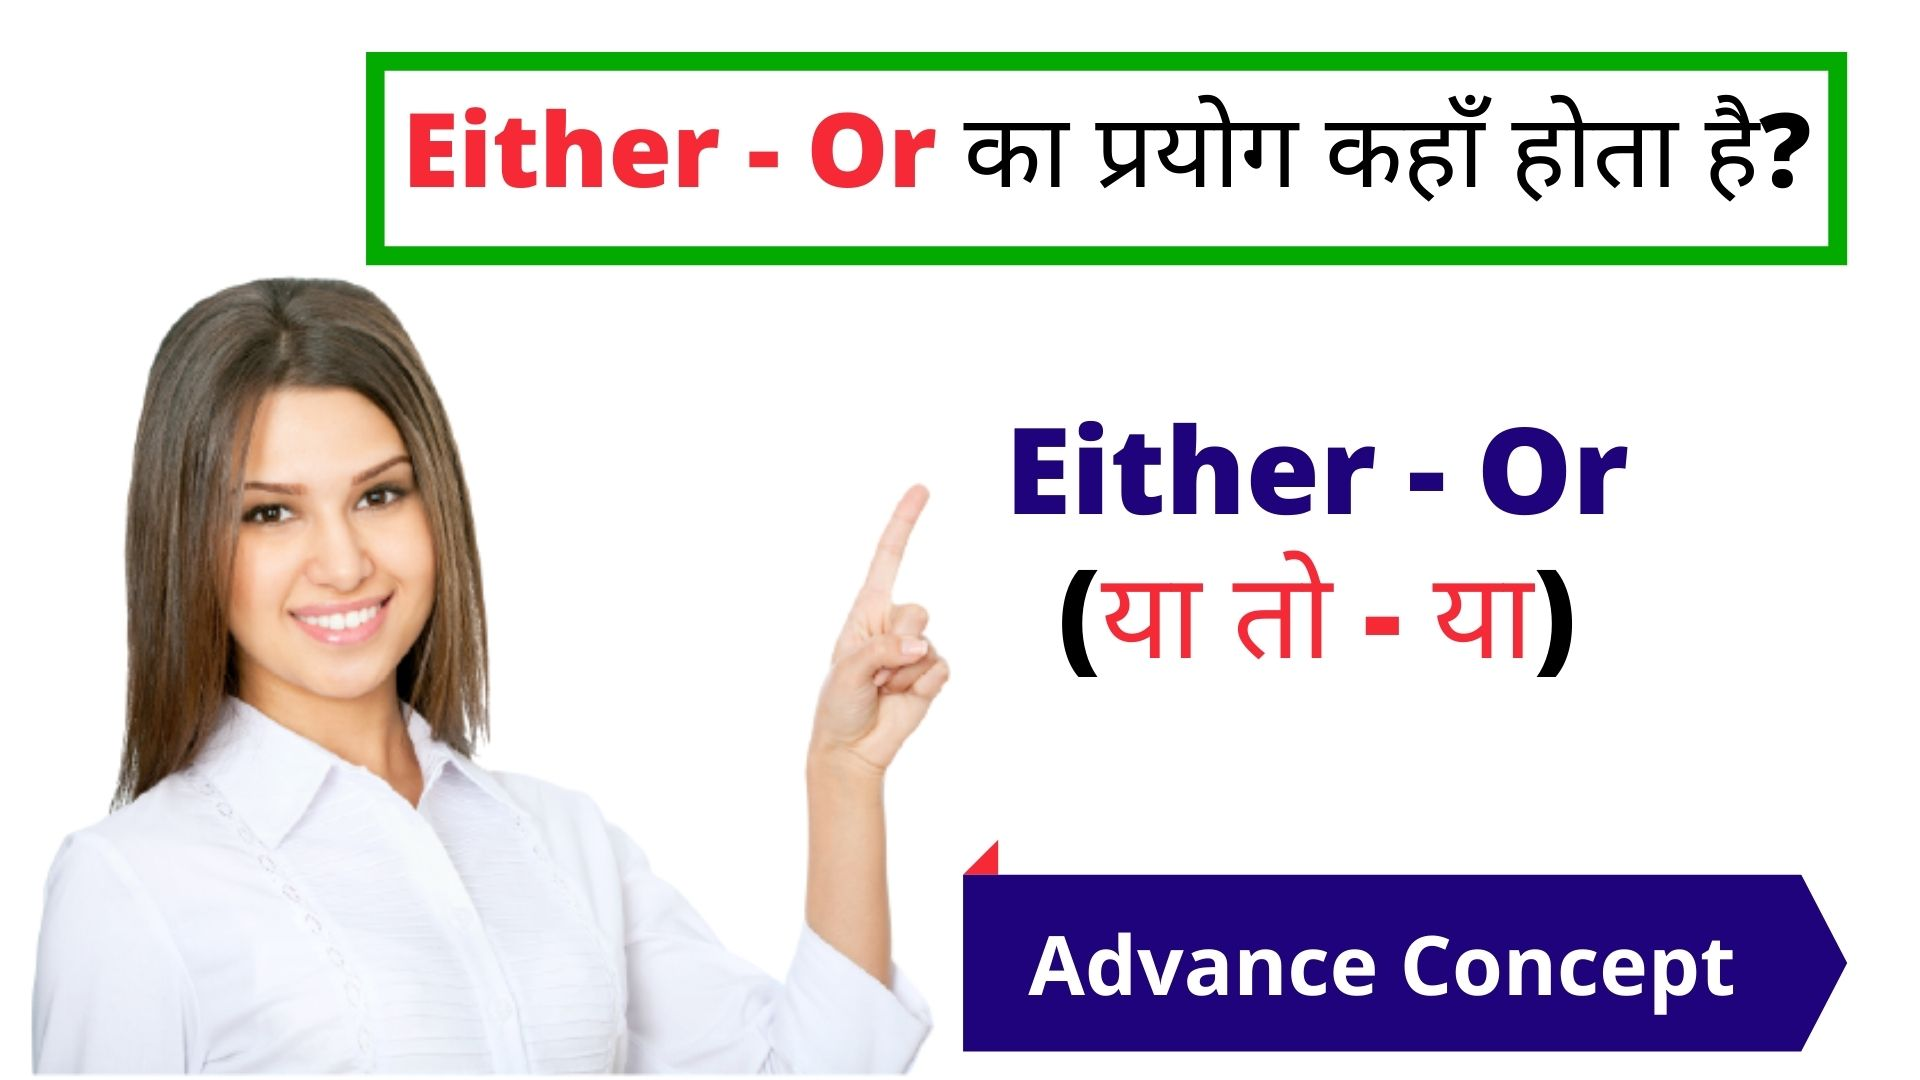 Either or meaning in hindi